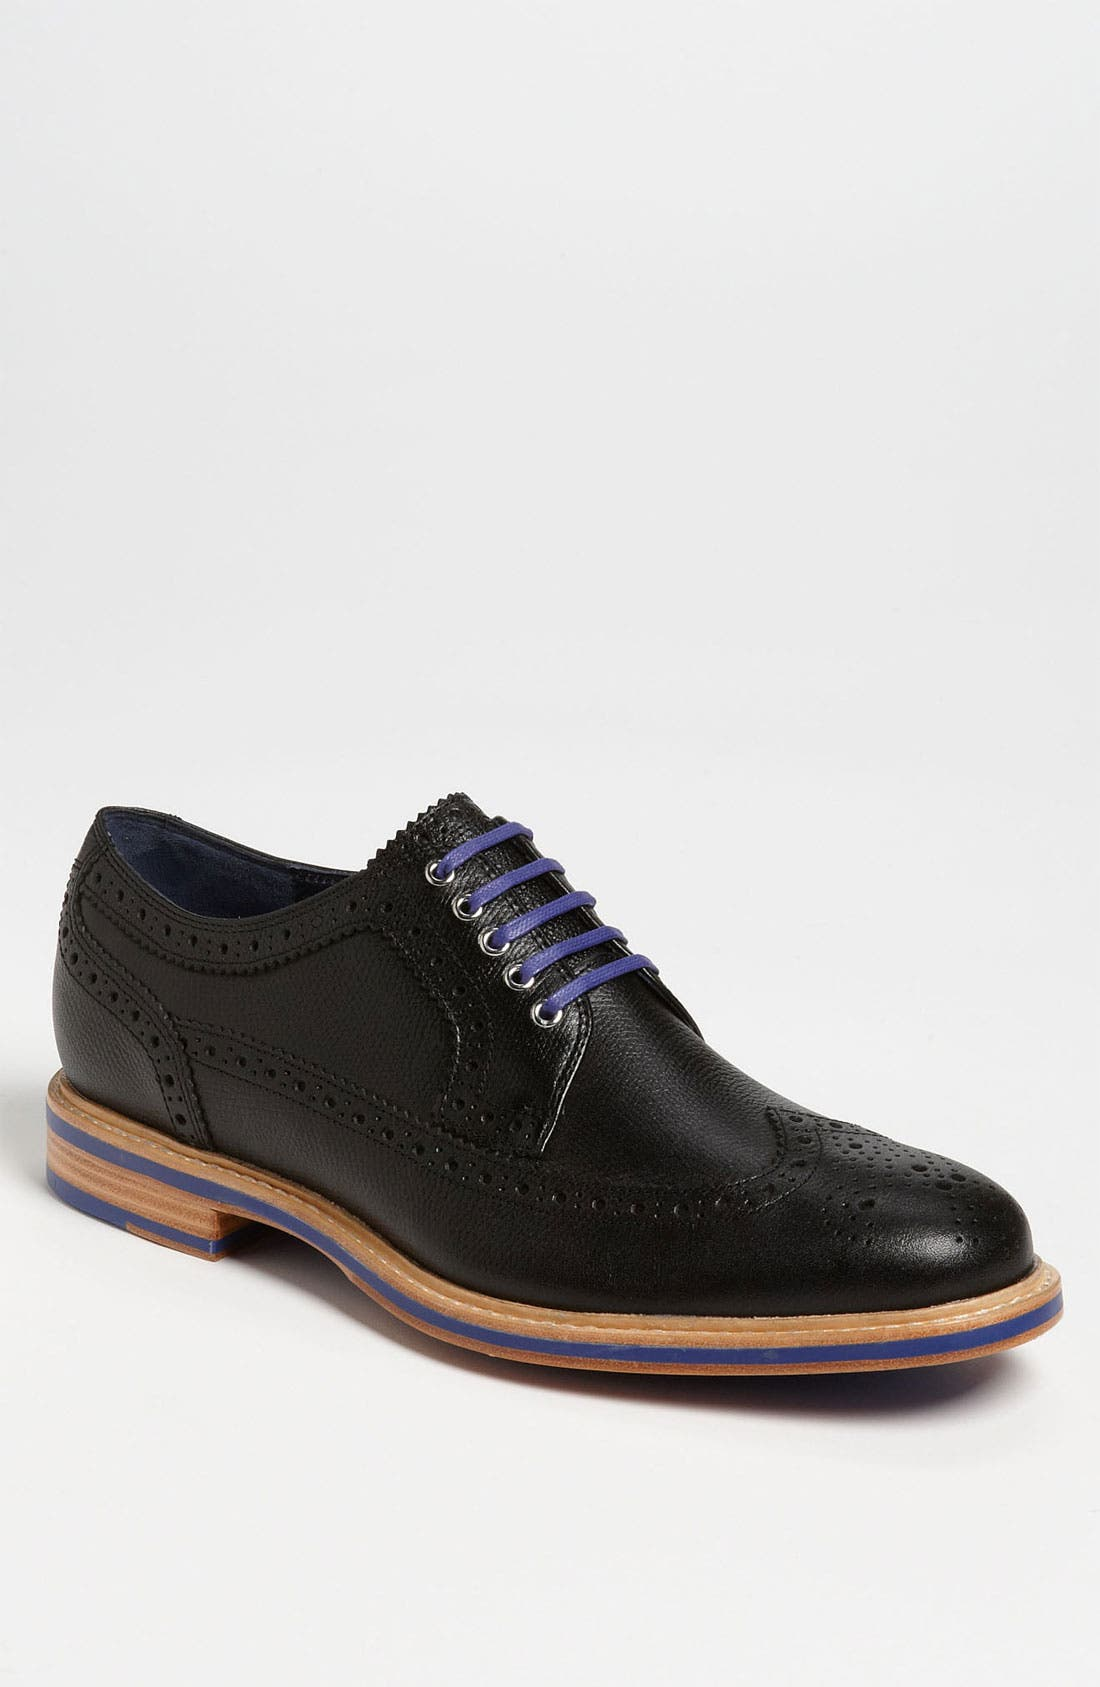 Main Image - Cole Haan 'Cooper Square' Longwing Oxford